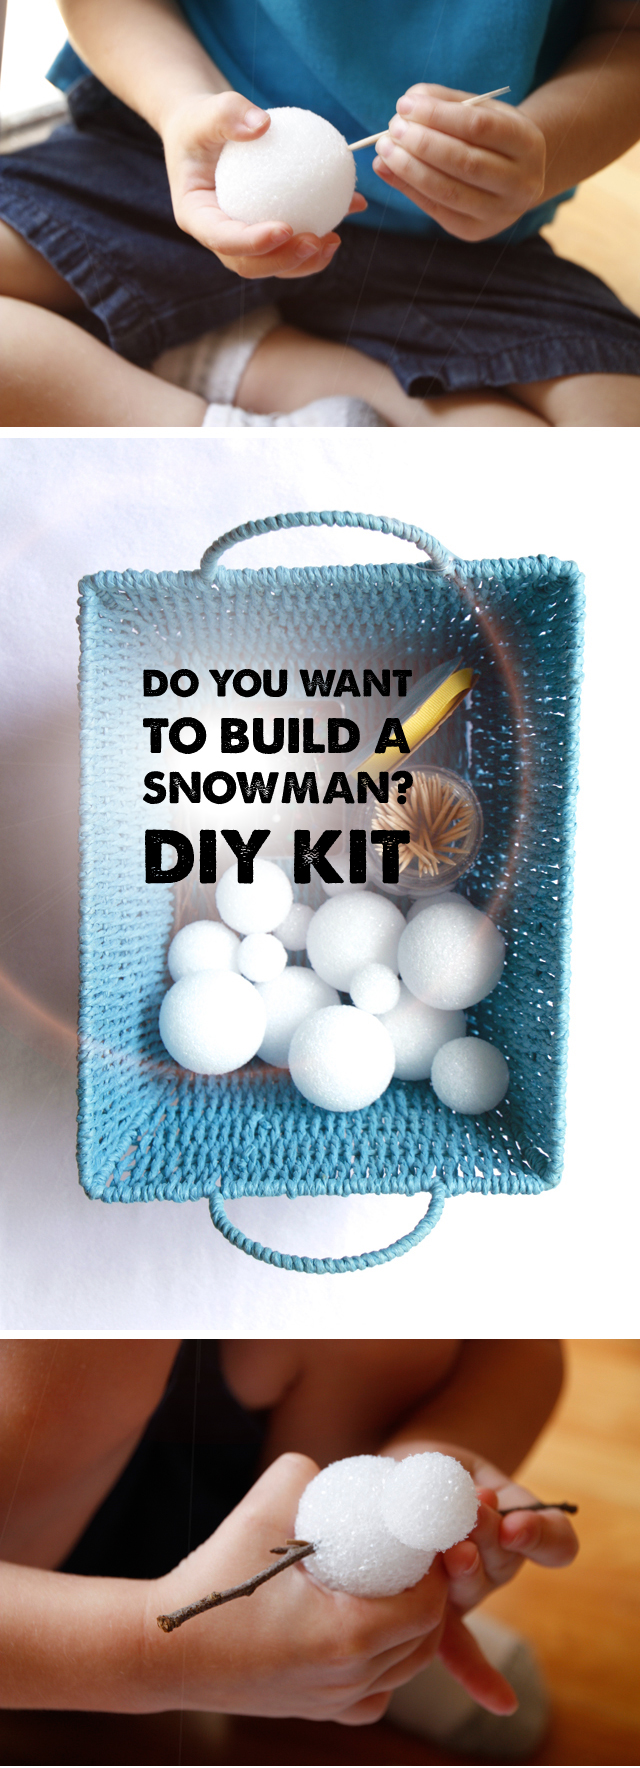 "Quiet time, ""Do You Wanna Build a Snowman?"" kit - my little frozen fans are gonna love this :)"